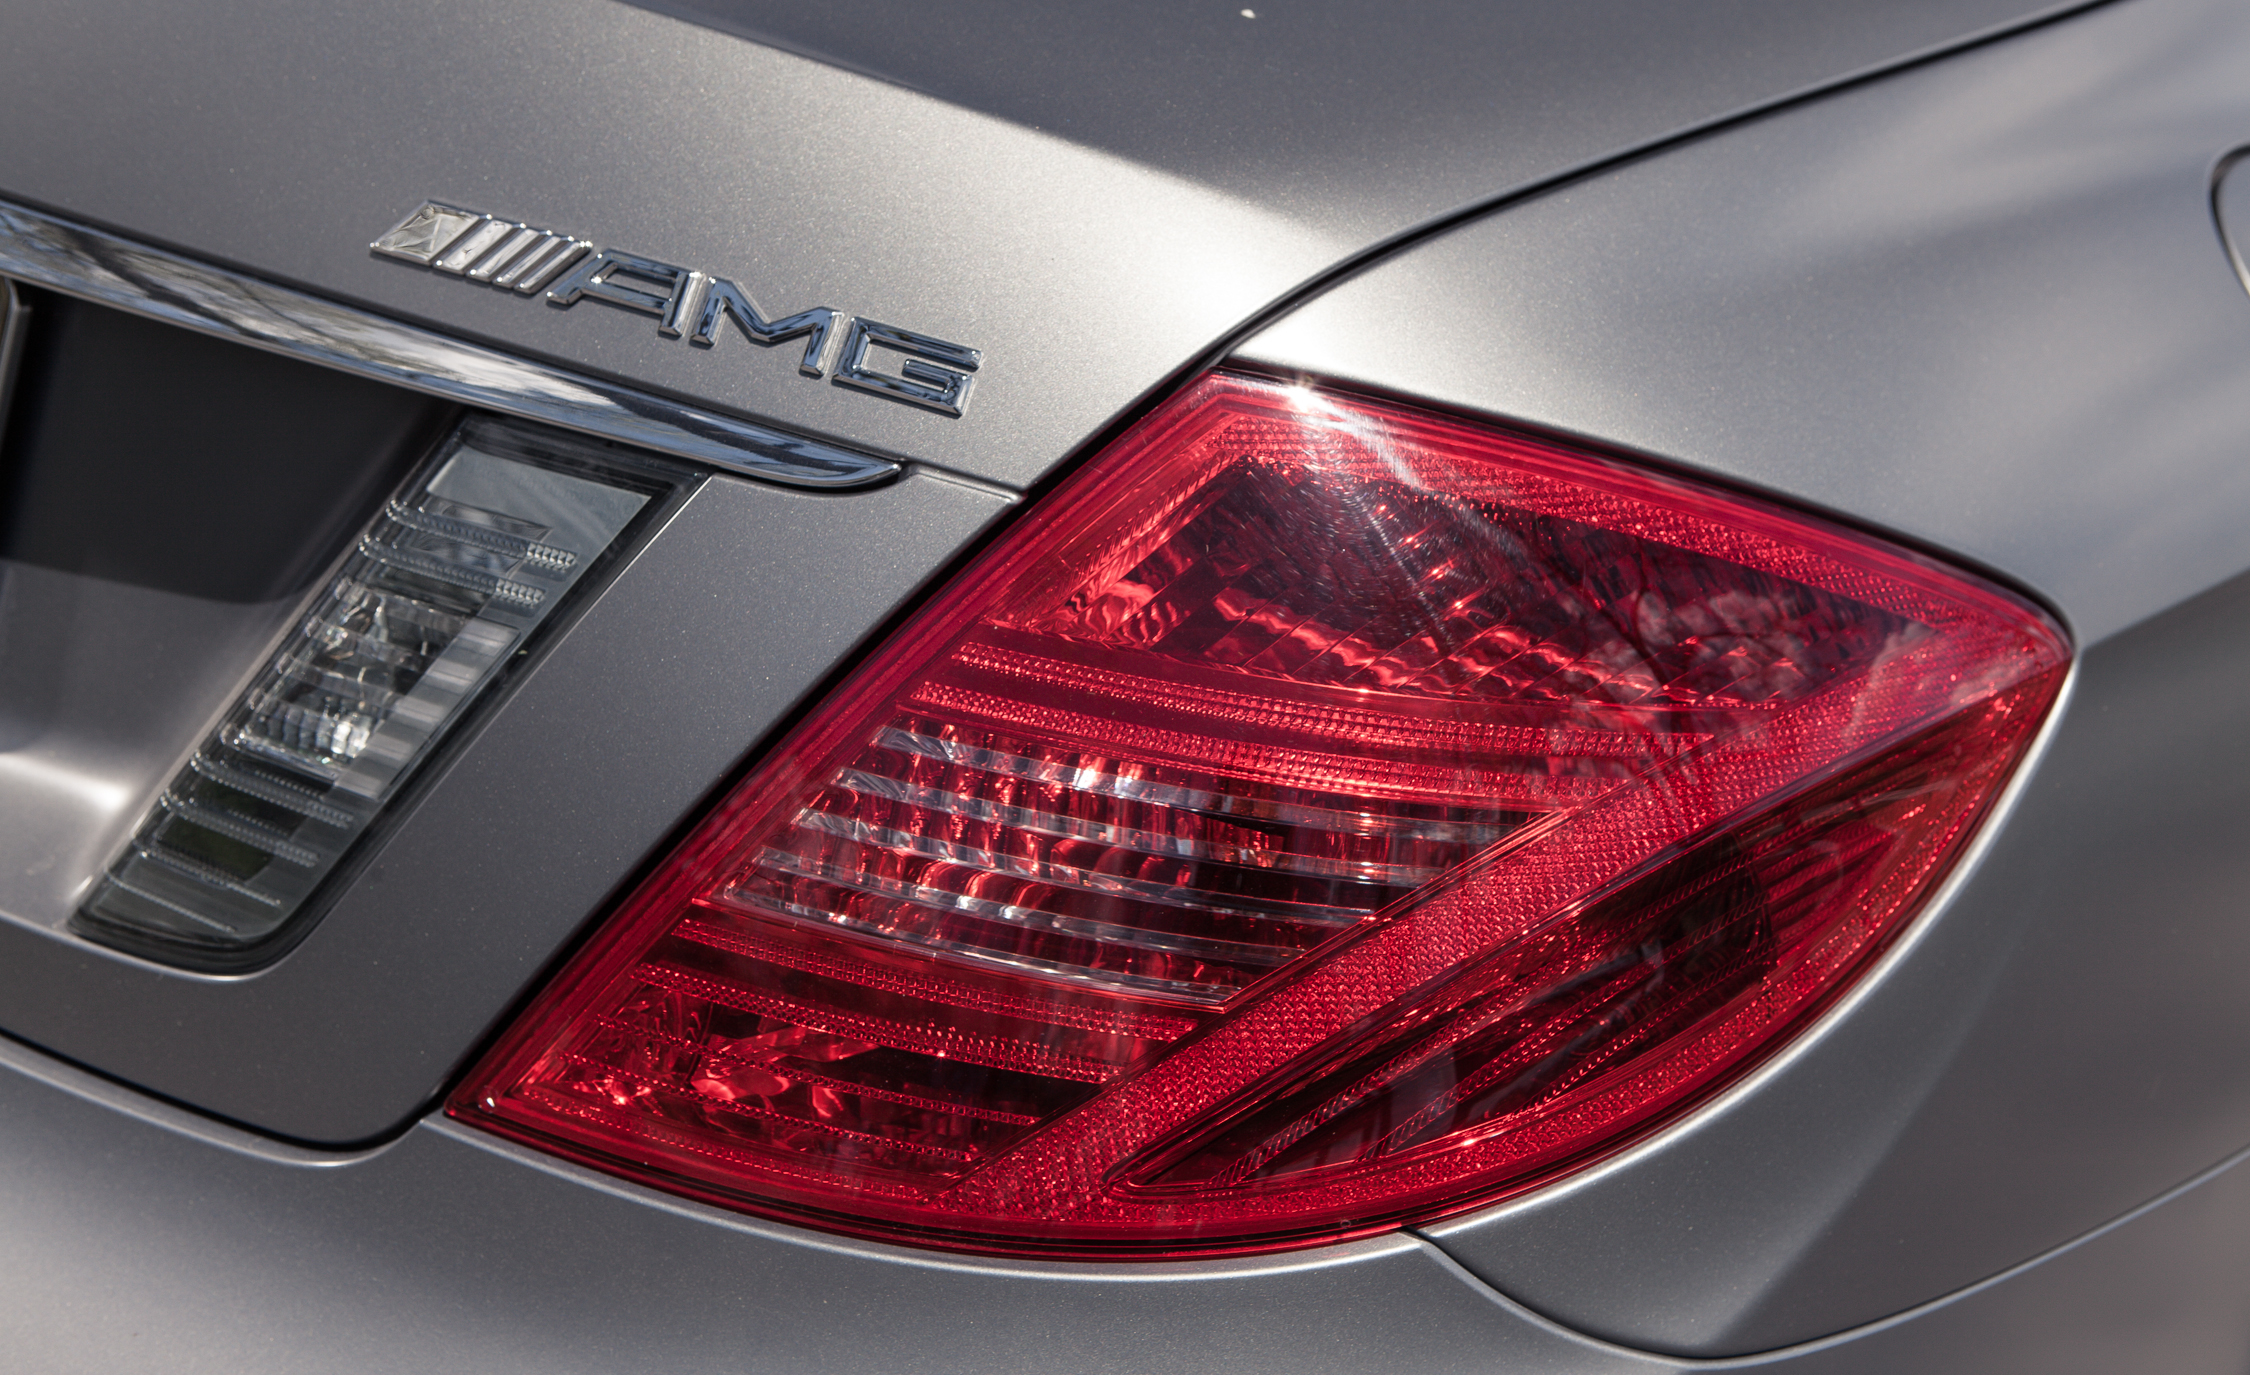 2013 Mercedes Benz CL65 AMG Exterior View Taillight (Photo 7 of 27)